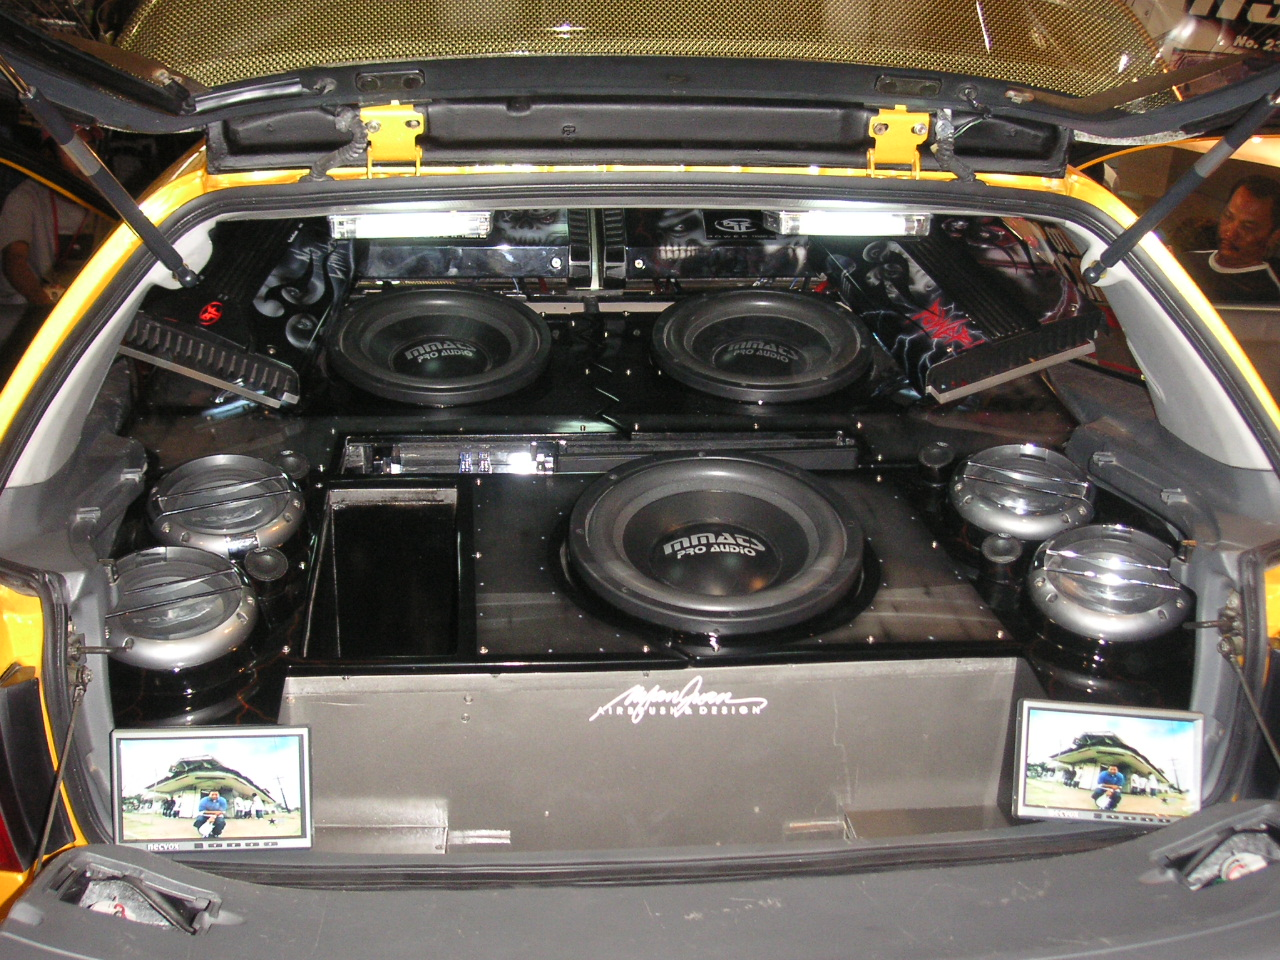 Best Sound System Money Can Buy For Car